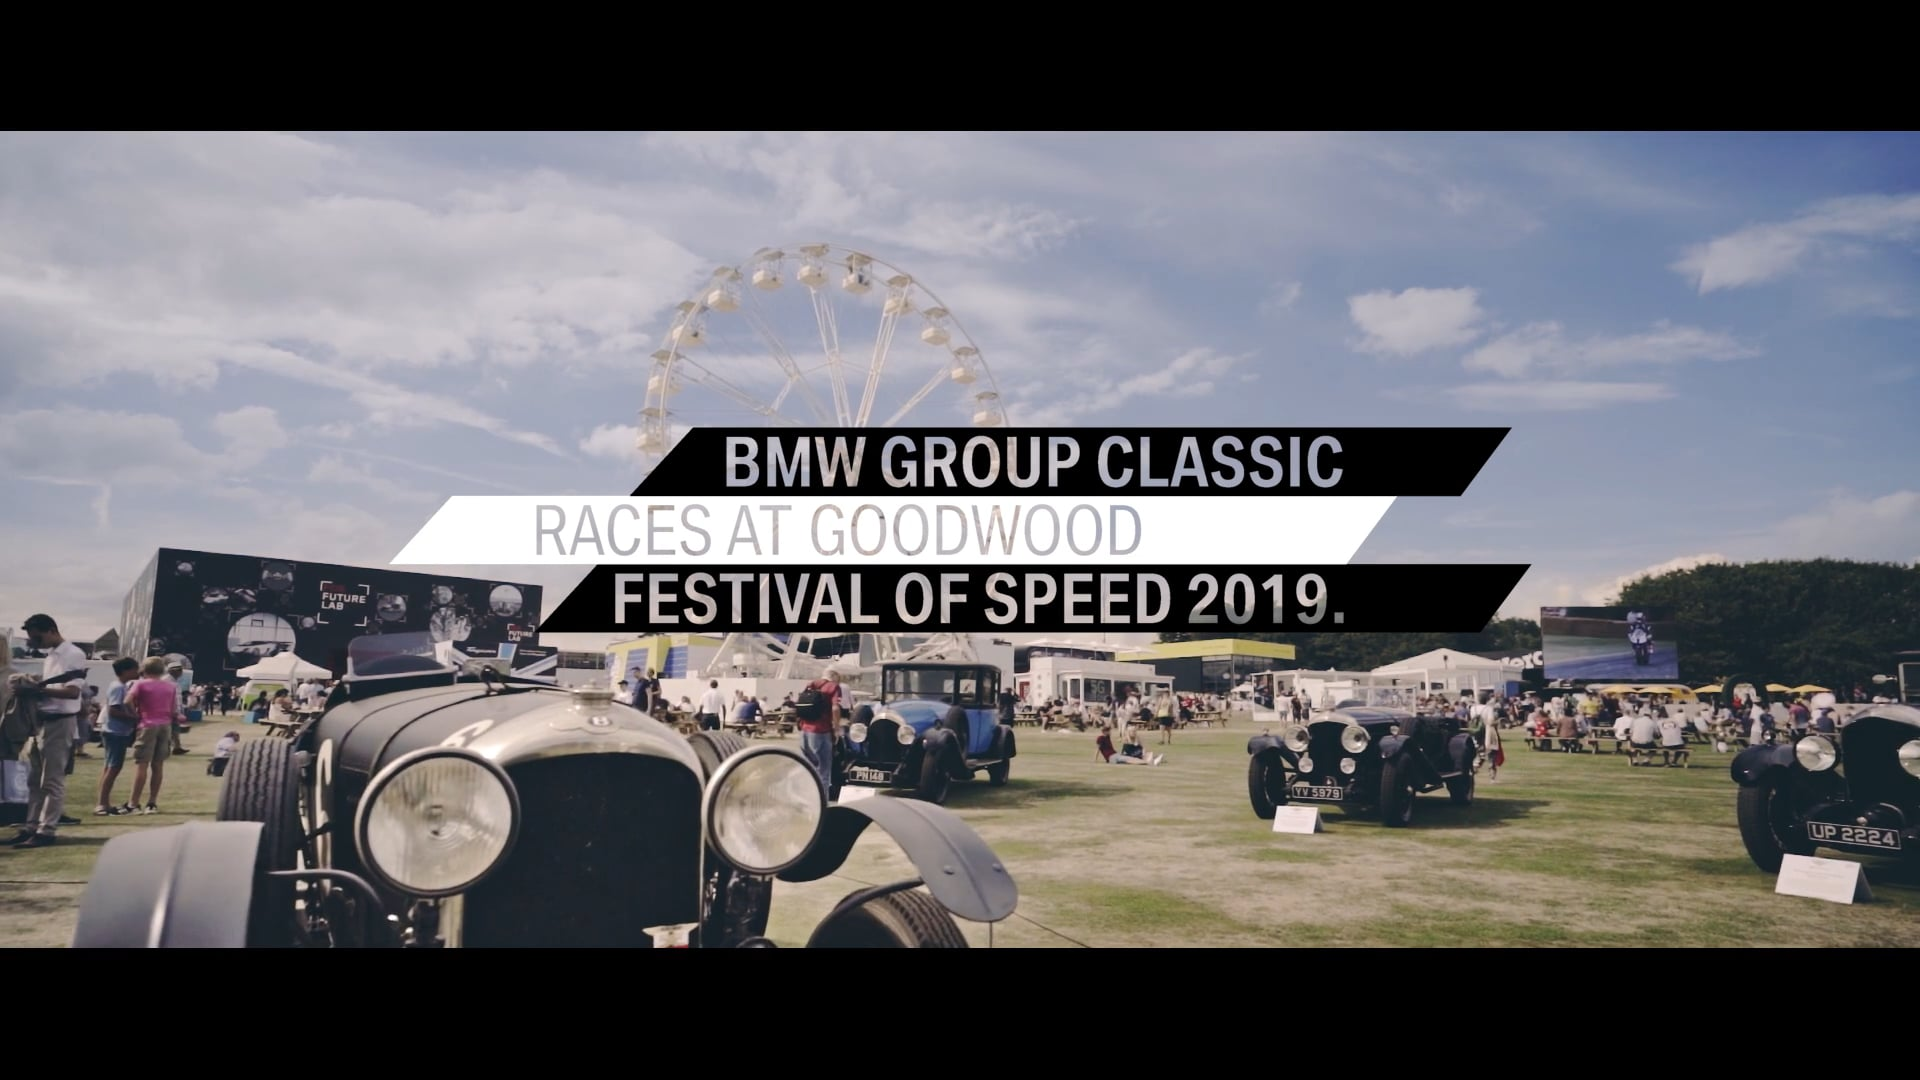 Our Passion. Our Adventures. Goodwood Festival of Speed.